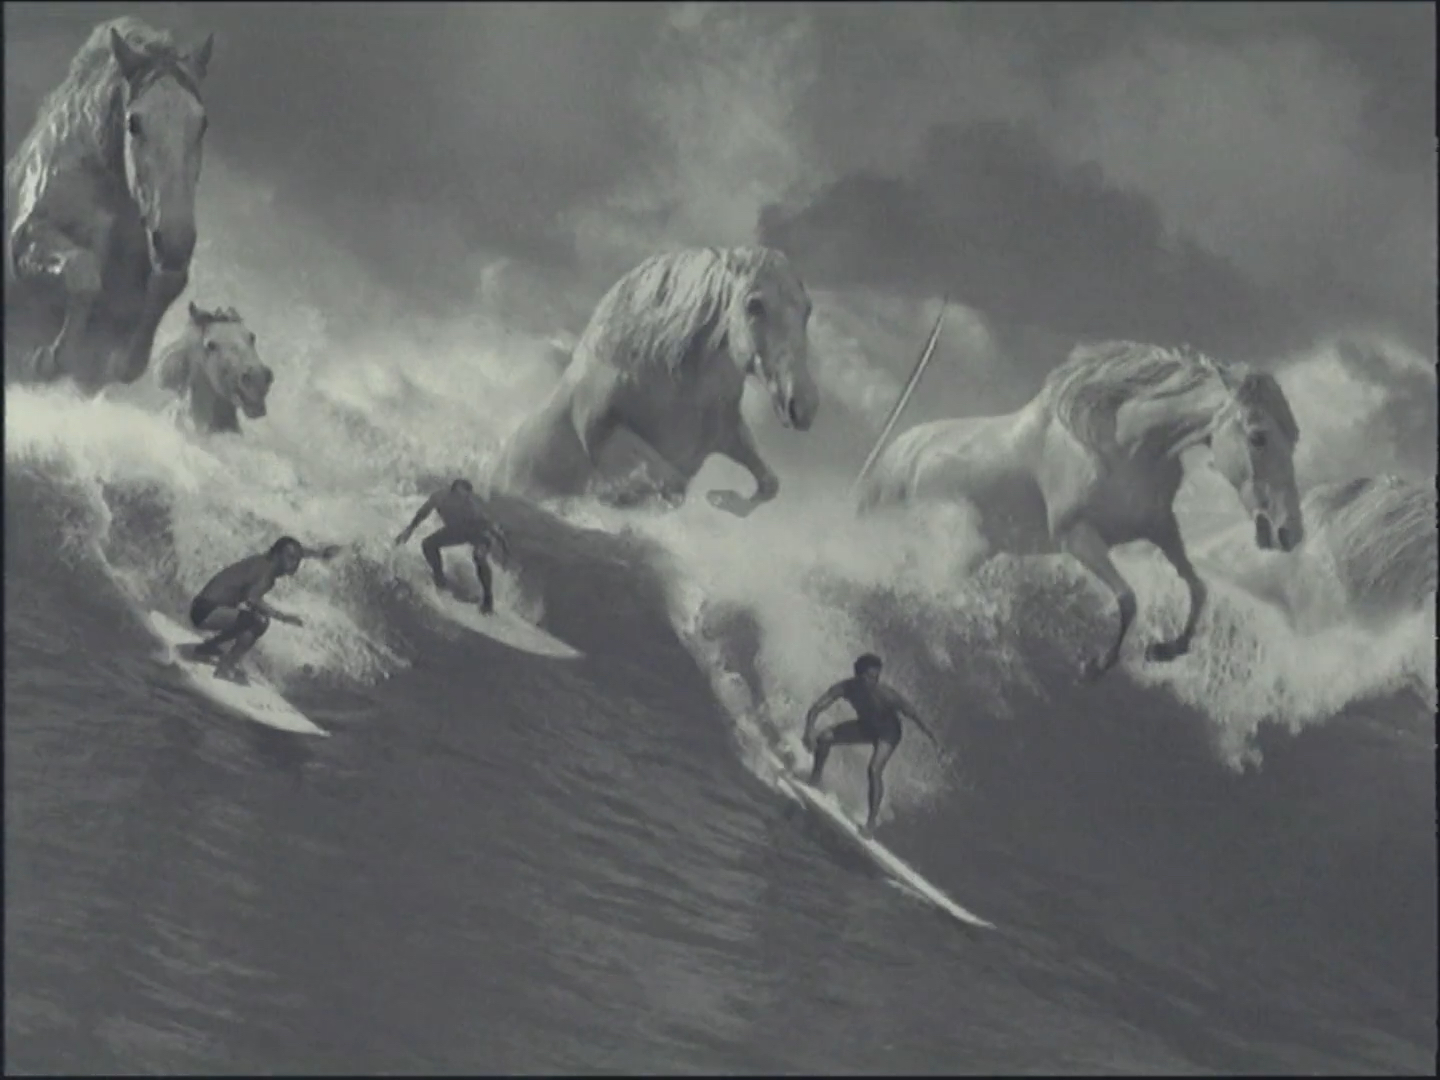 'I felt like it was a poem': the VFX oral history of Guinness 'Surfer'